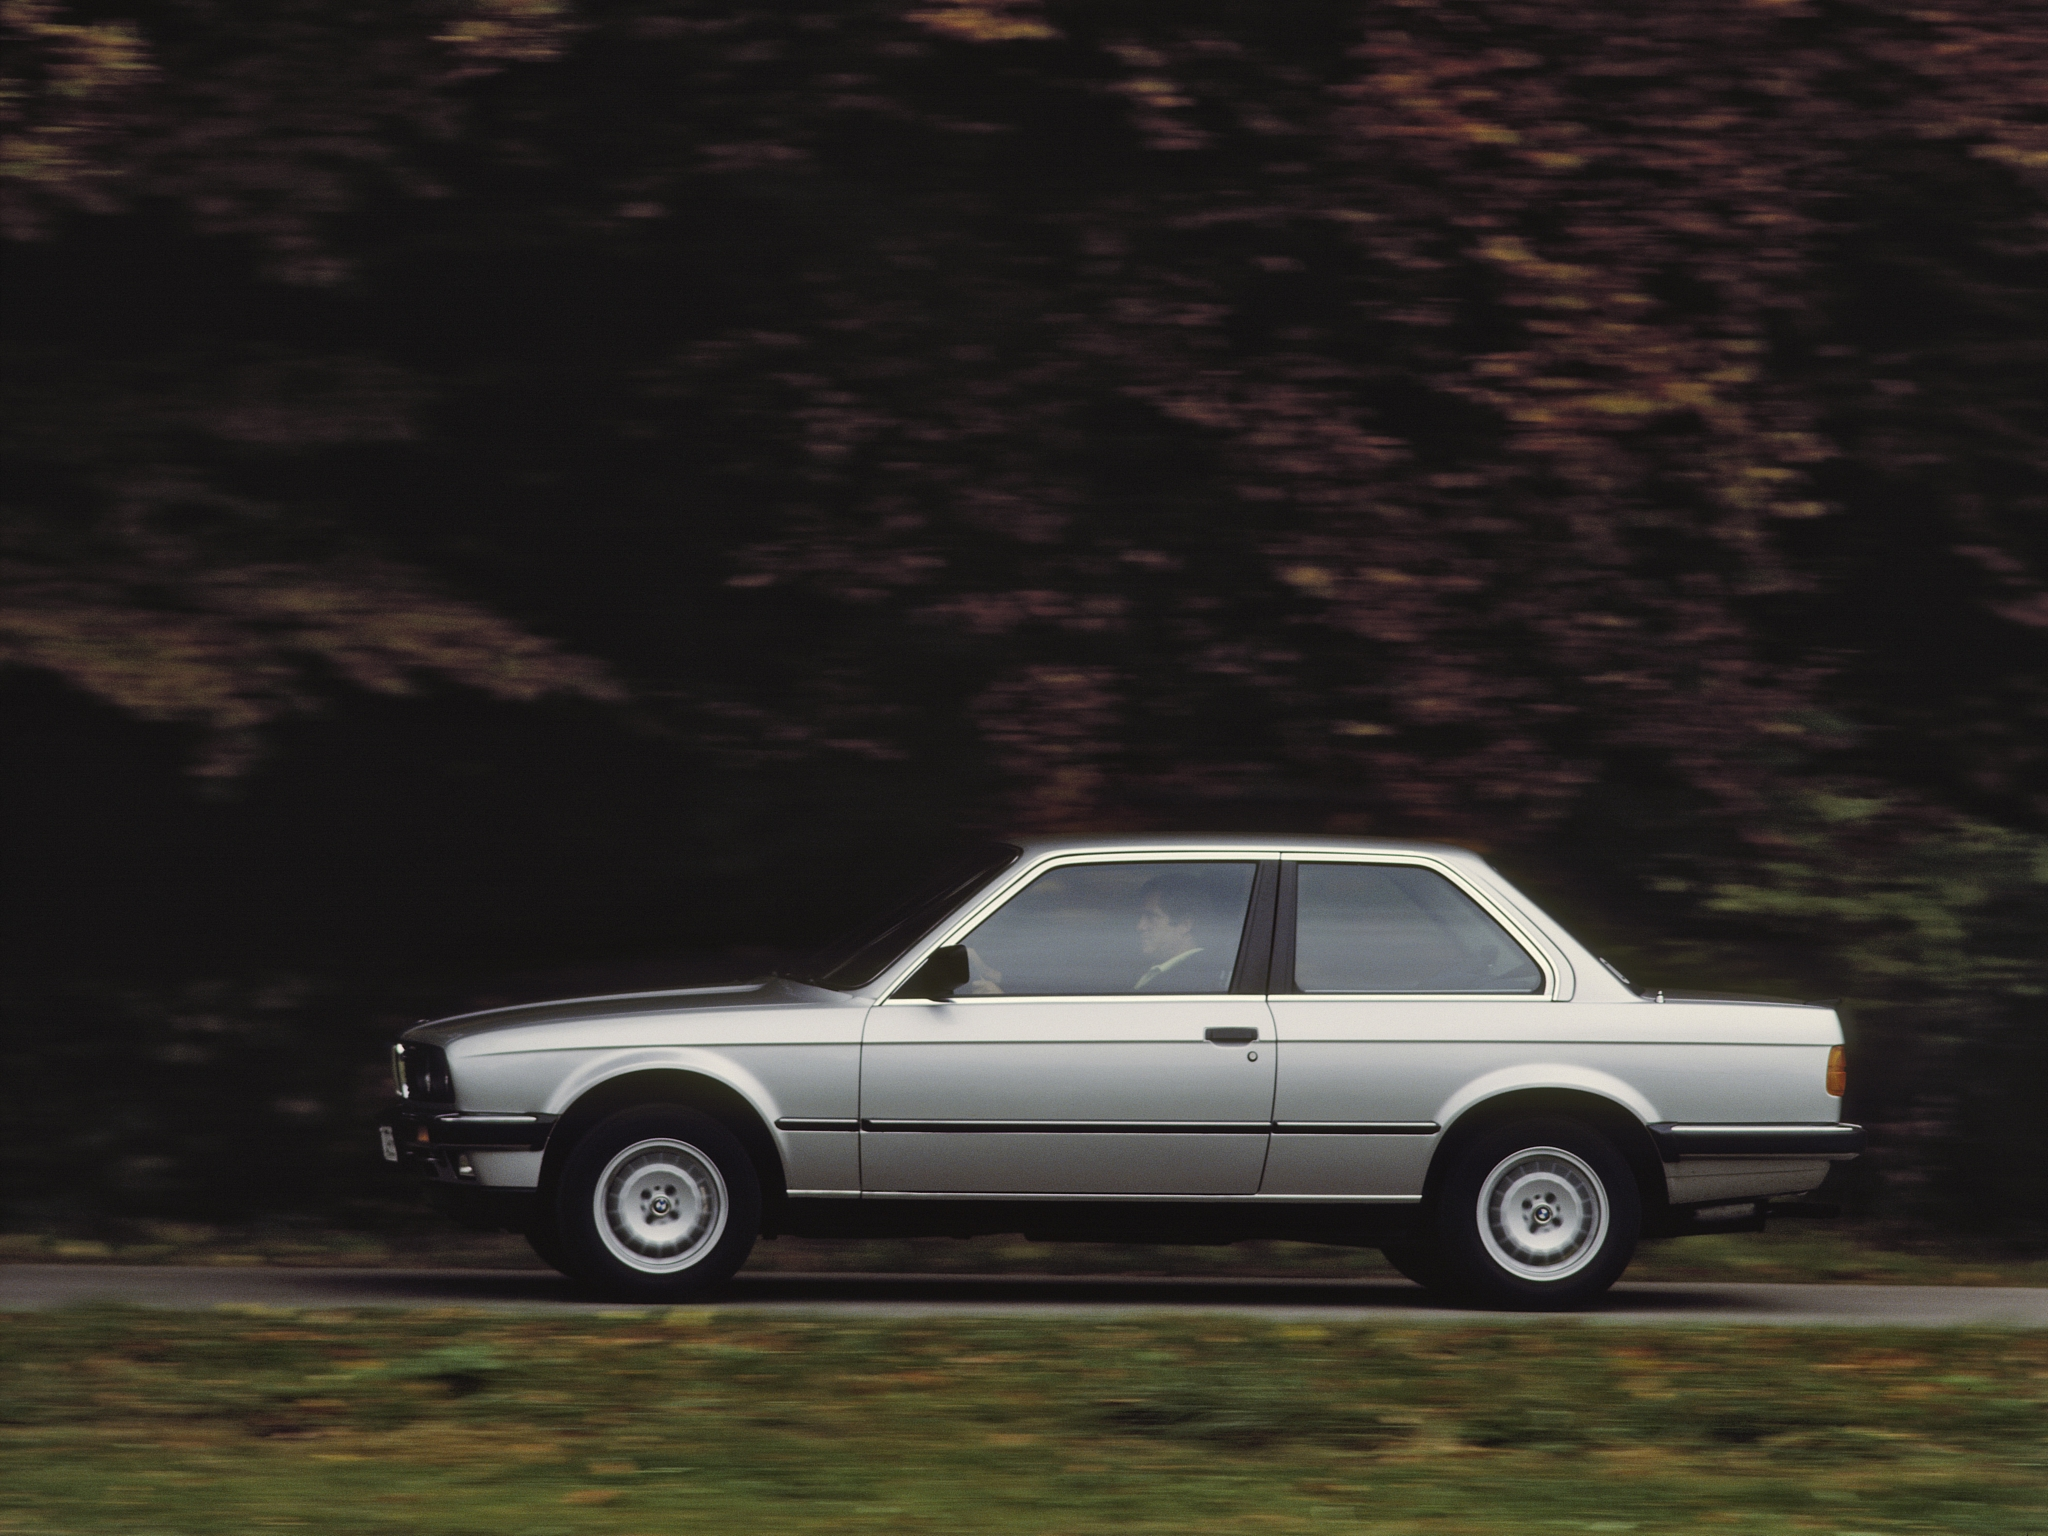 BMW 3 series 318i 1982 photo - 7